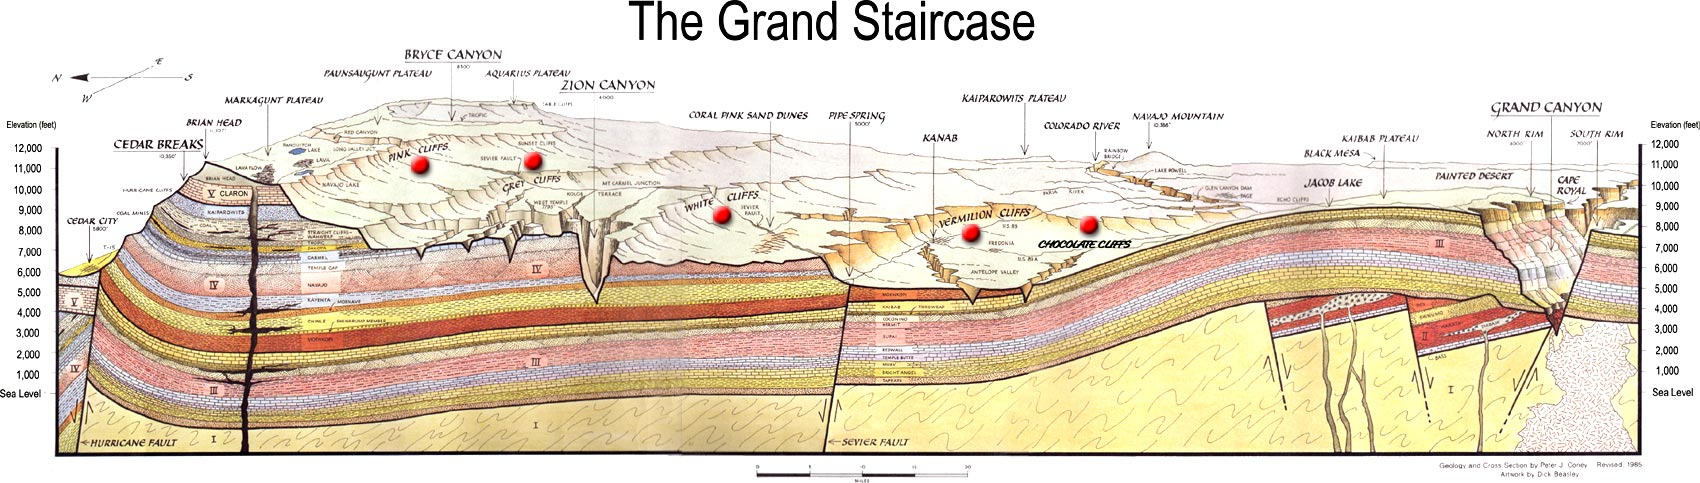 Grand_Staircase-big Wikipedia